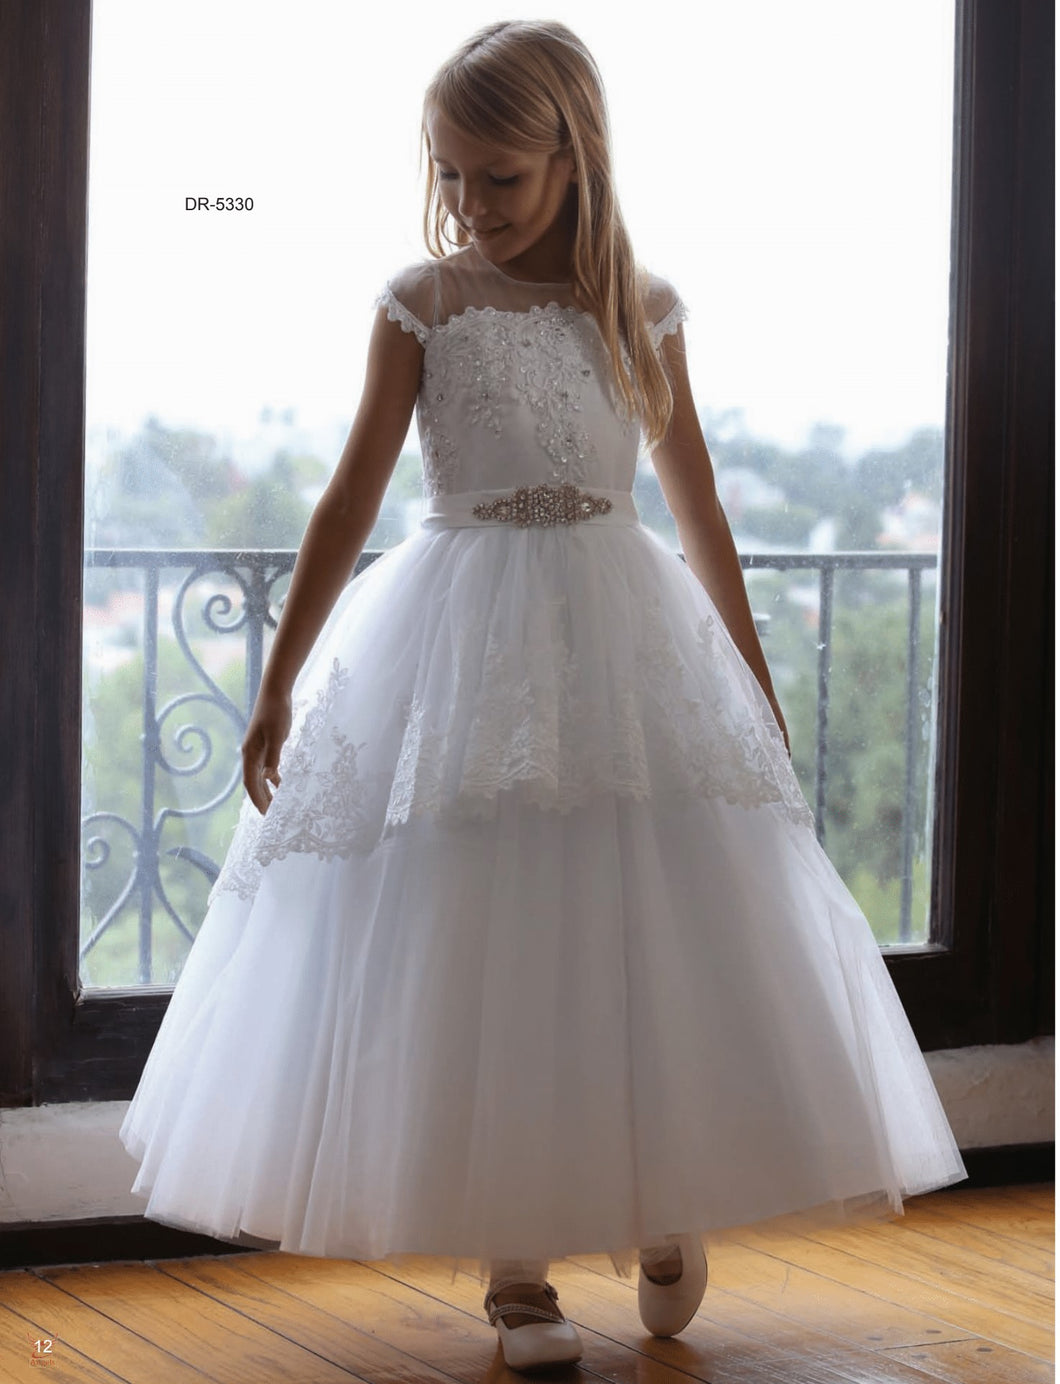 Girls Communion Dress - FC8